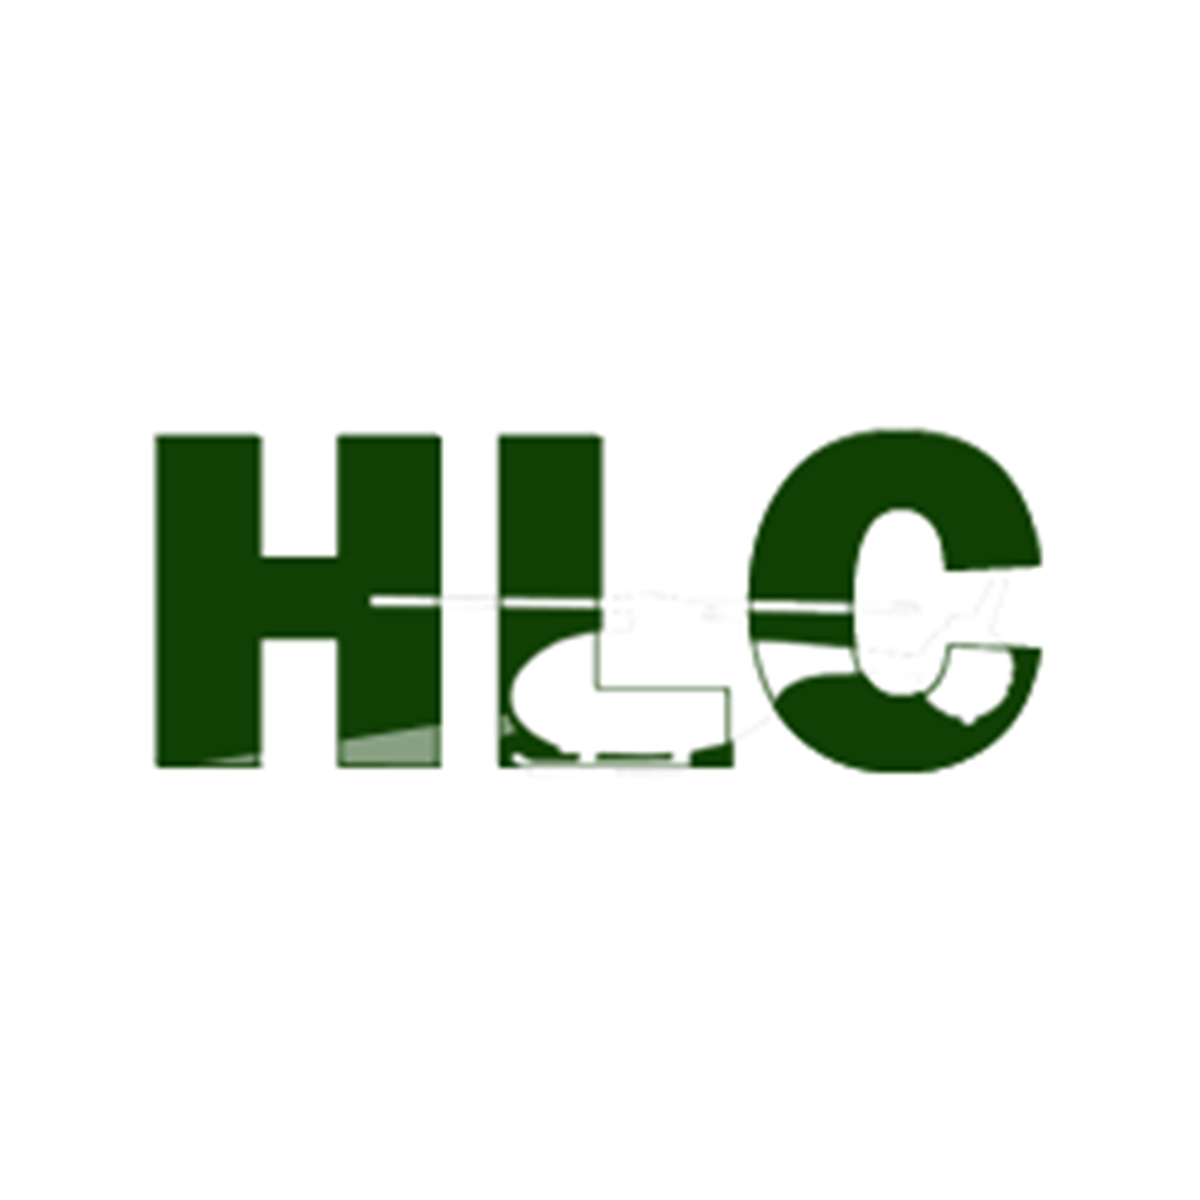 HLC - Heli Light Control v1.0